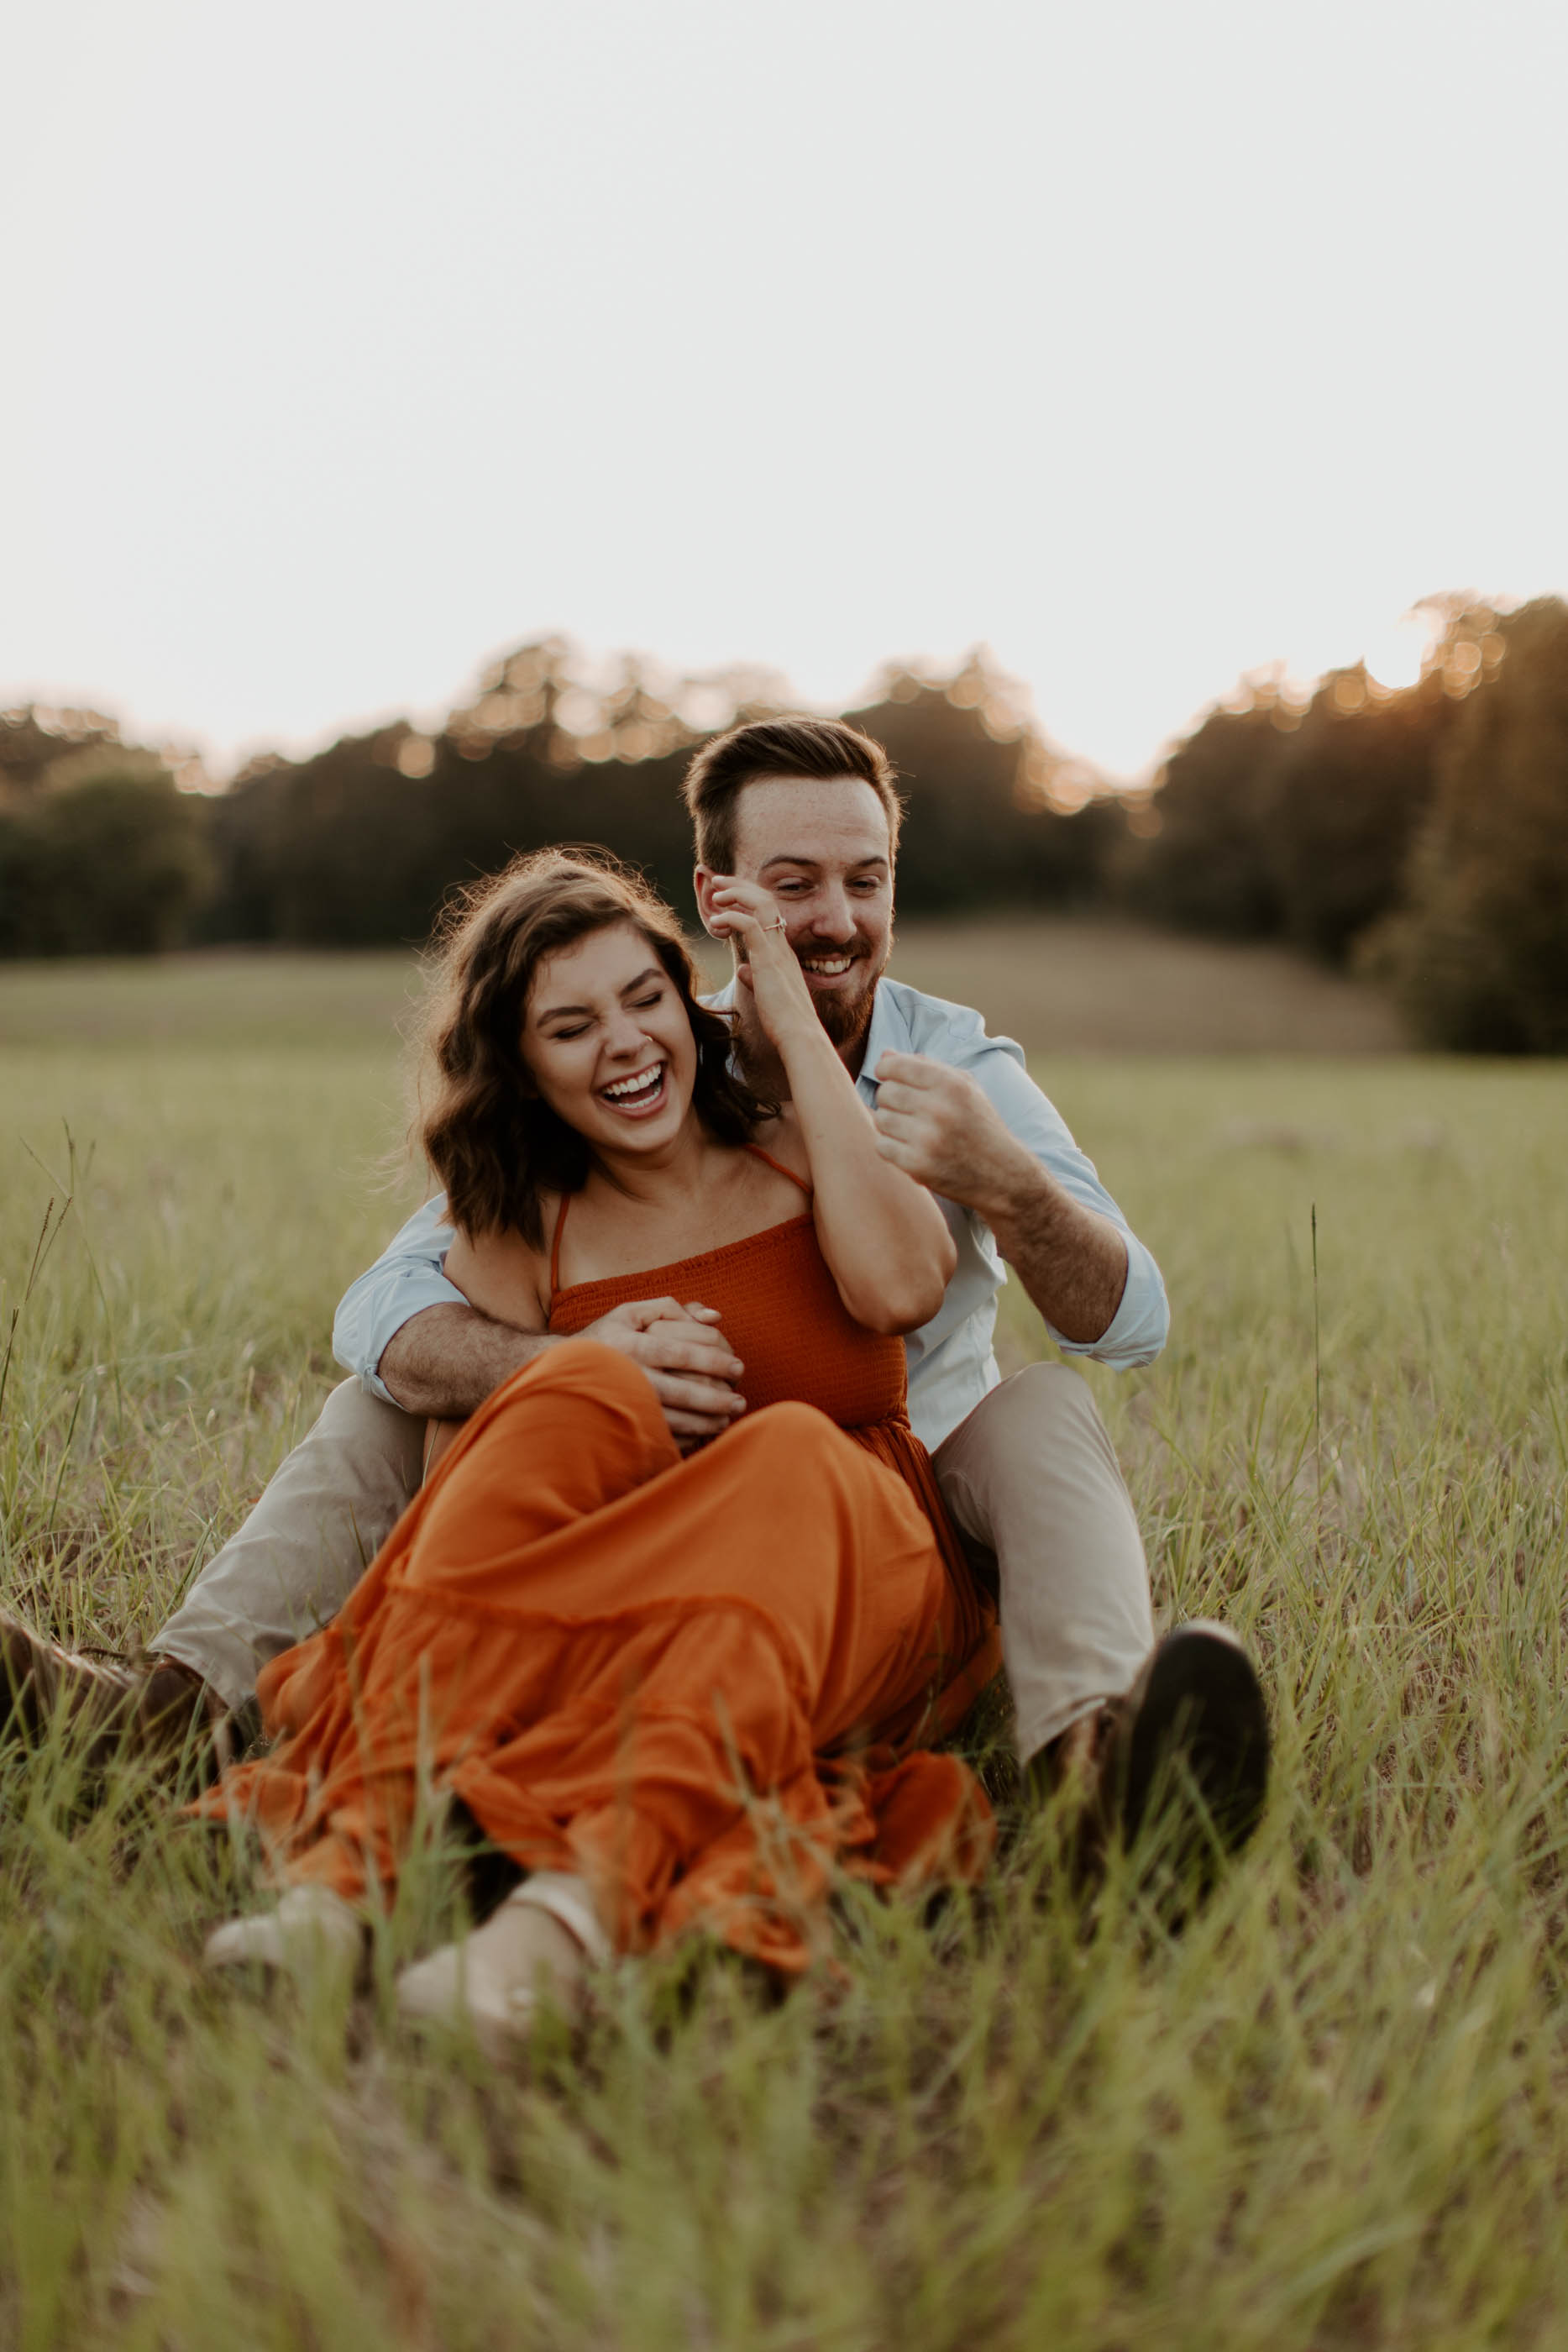 couple sitting in grass laughing